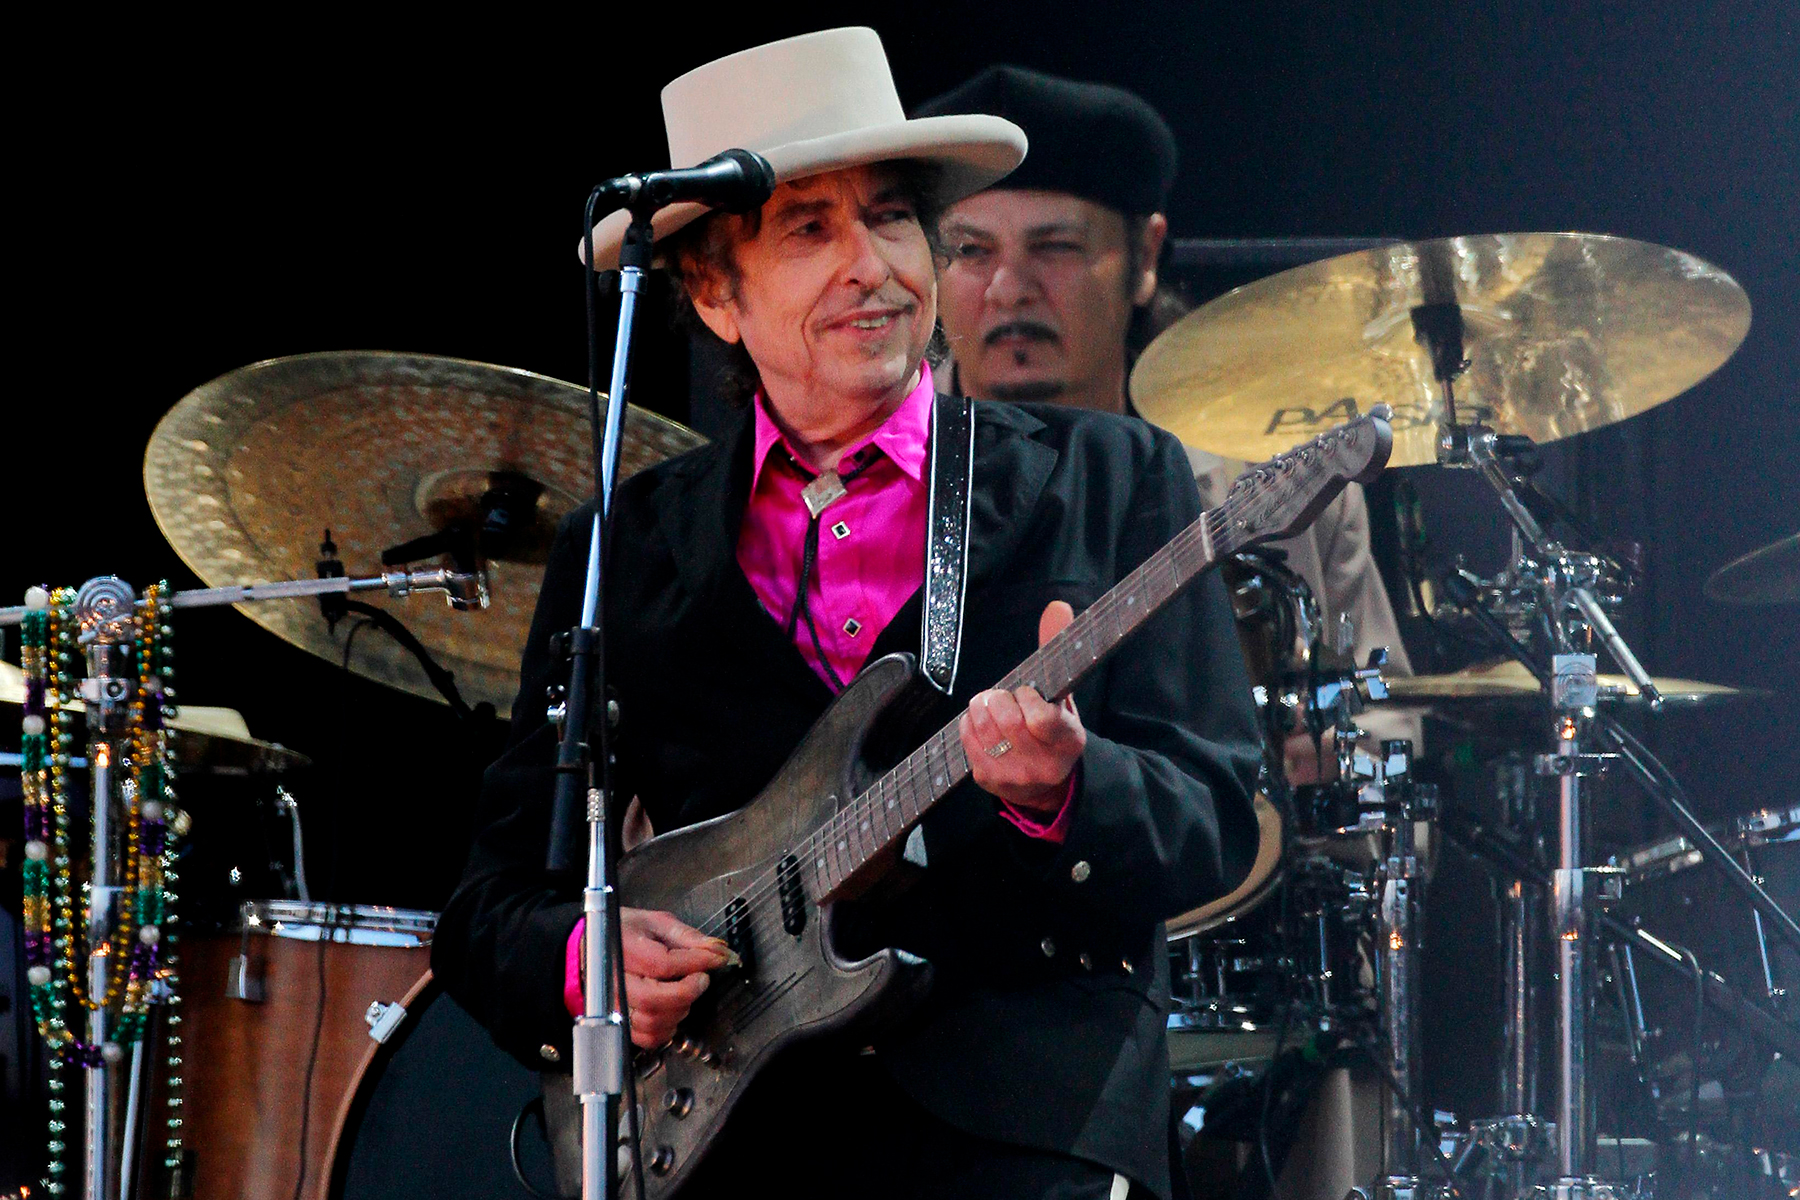 UMPG acquires Bob Dylan back catalogue. File photo dated 03/07/10 showing Bob Dylan performing on stage at the Hop Farm Festival, Paddock Wood Kent. Dylan's entire back catalogue has been acquired by Universal Music Publishing Group (UMPG). The agreement, one of the largest in recent years, covers the copyrights to 600 of the 79-year-old US musician's tracks spanning his six-decade career. Issue date: Monday December 7, 2020. It is understood that Dylan's catalogue was acquired from the artist himself. See PA story SHOWBIZ Dylan. Photo credit should read: Gareth Fuller/PA Wire URN:56989576 (Press Association via AP Images)